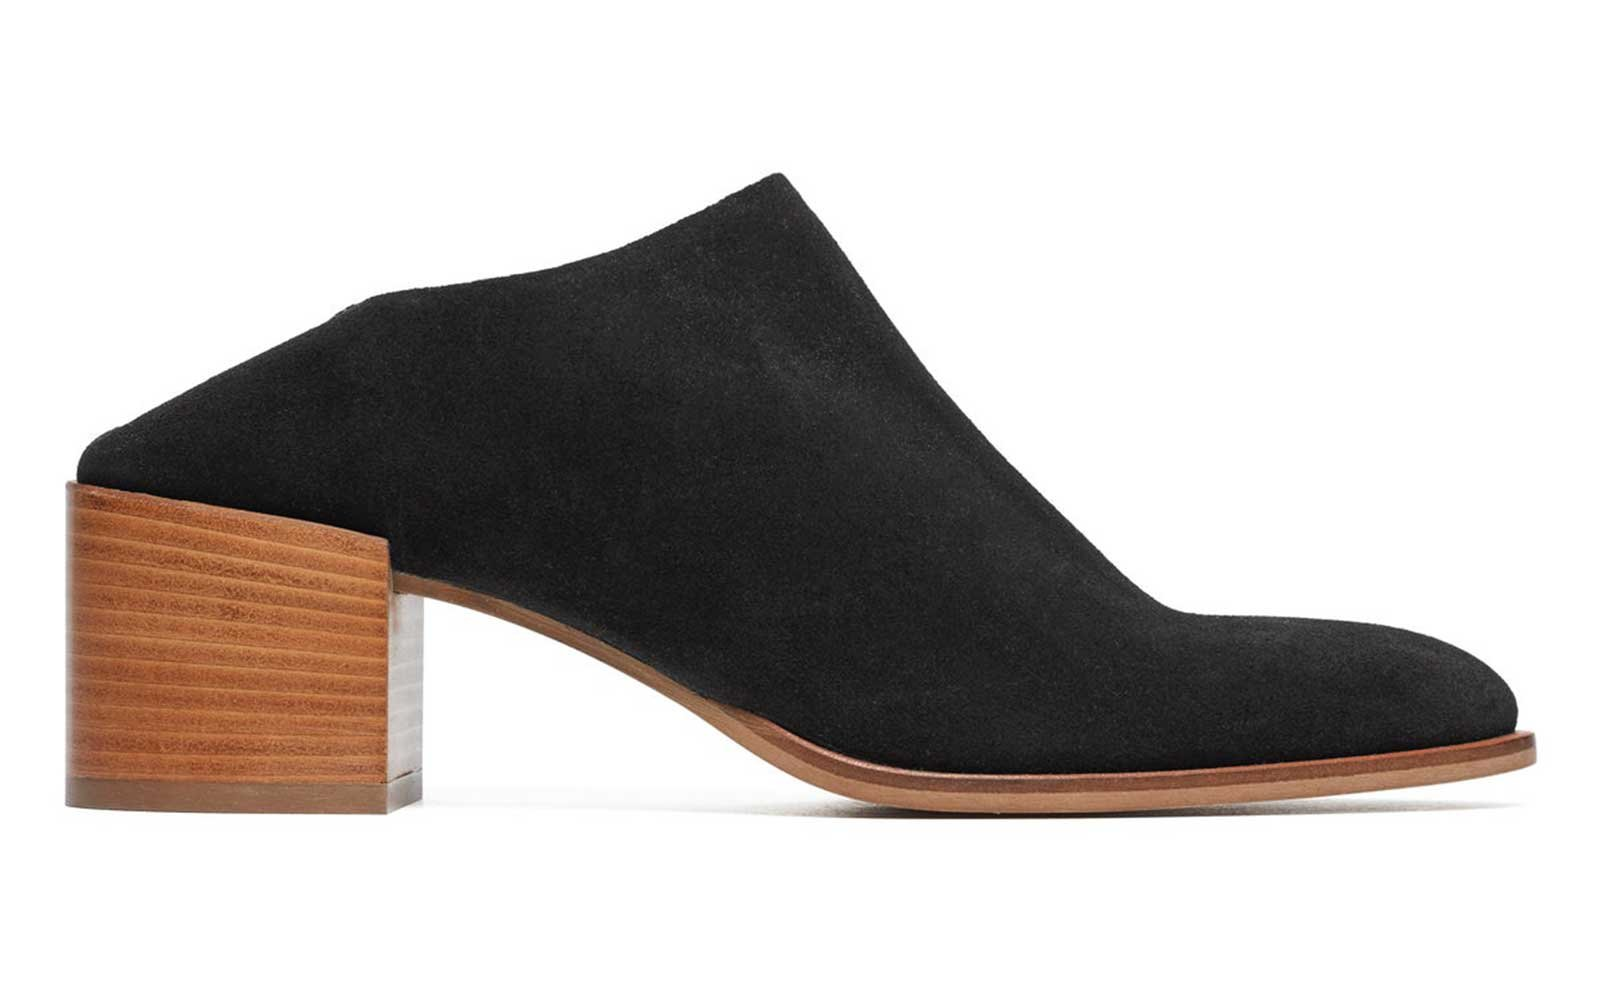 Cheap Suede Mules